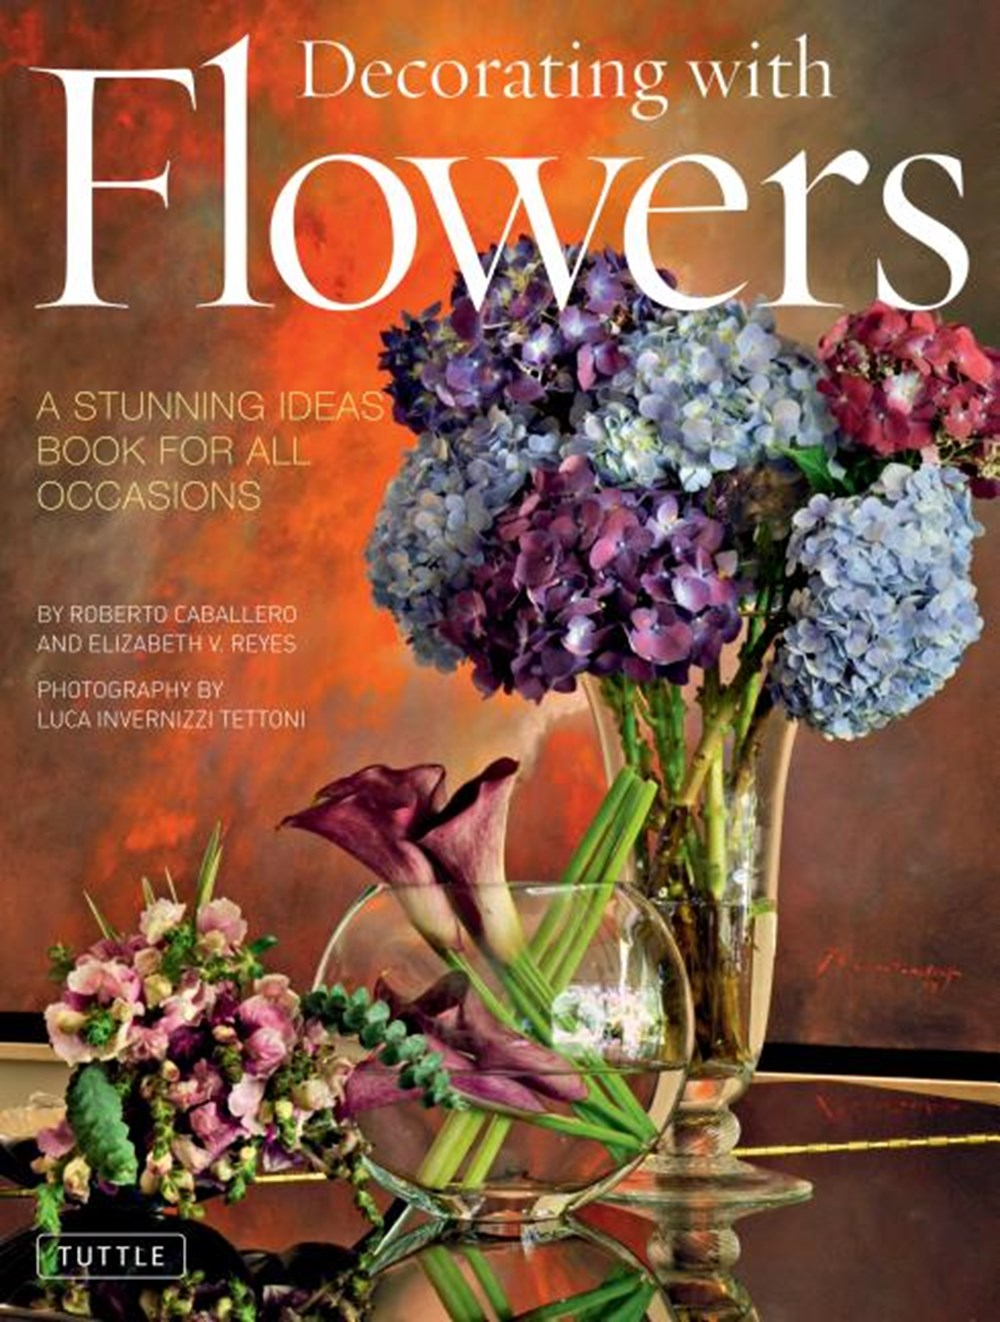 Decorating with Flowers A Stunning Ideas Book for All Occasions